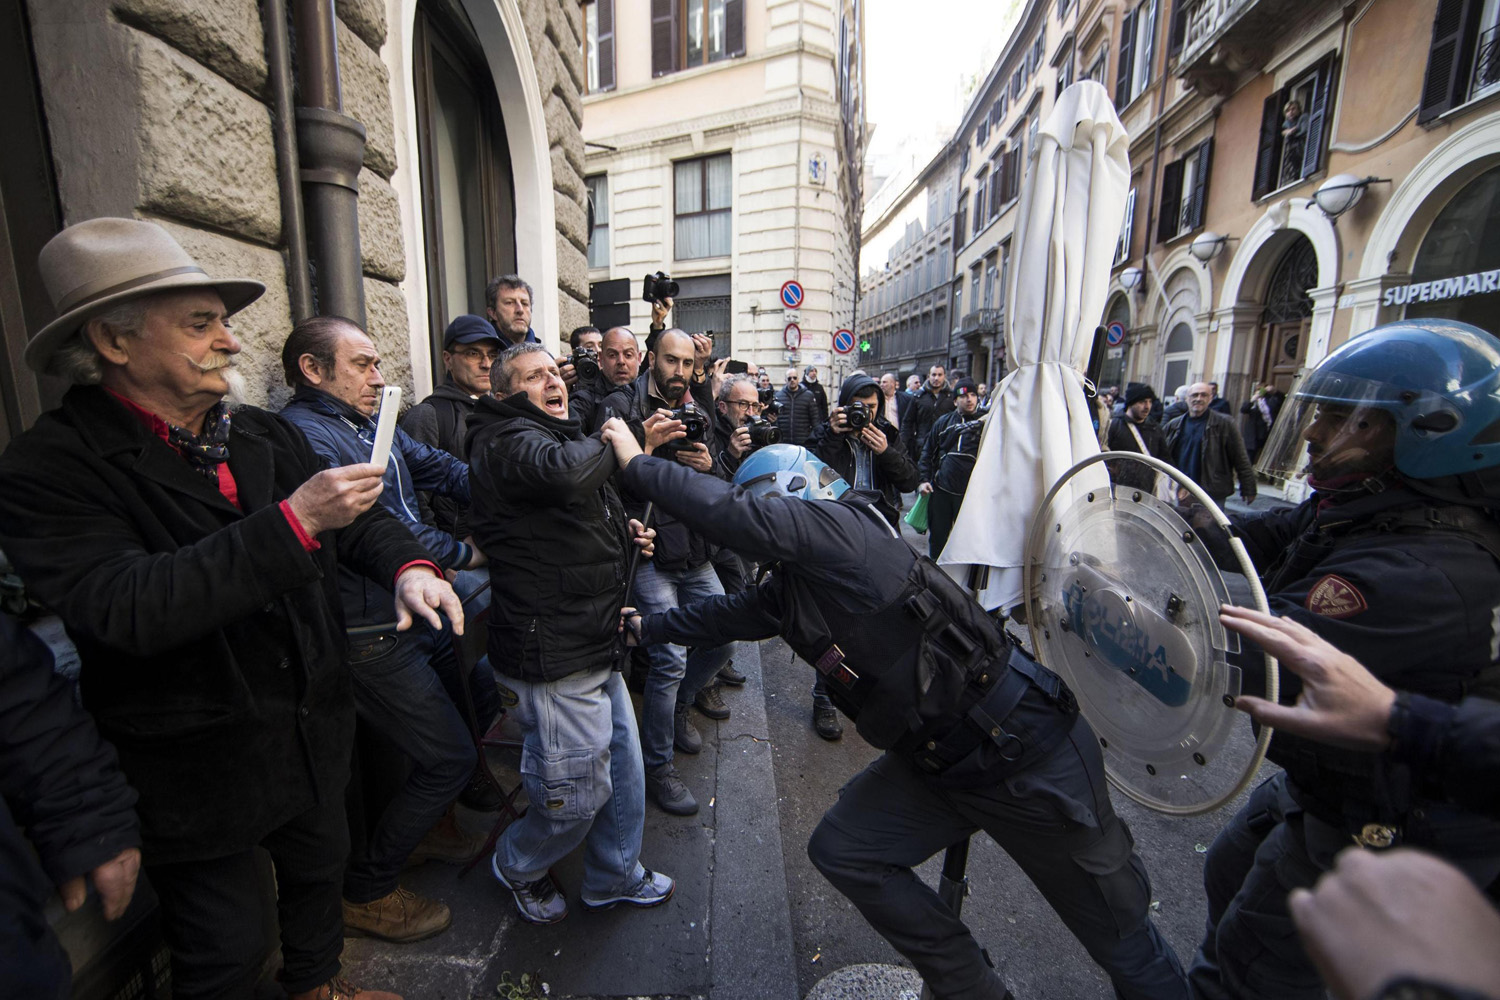 Riot police clash with taxi drivers and street sellers during a demonstration, in Rome, (Massimo Percossi/AP)